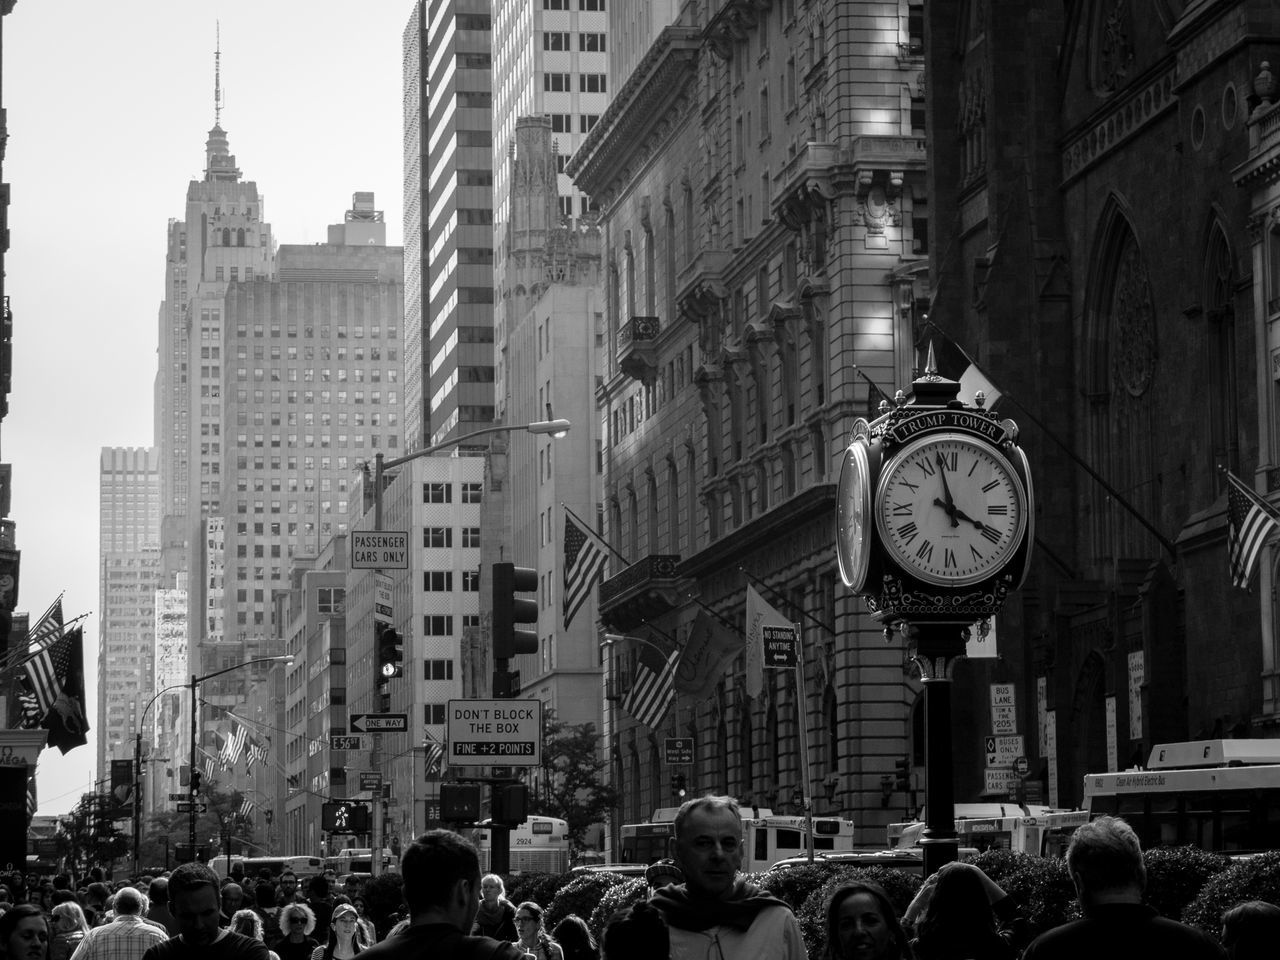 building exterior, architecture, city, built structure, clock, large group of people, time, street, skyscraper, city life, crowd, outdoors, real people, men, day, modern, cityscape, people